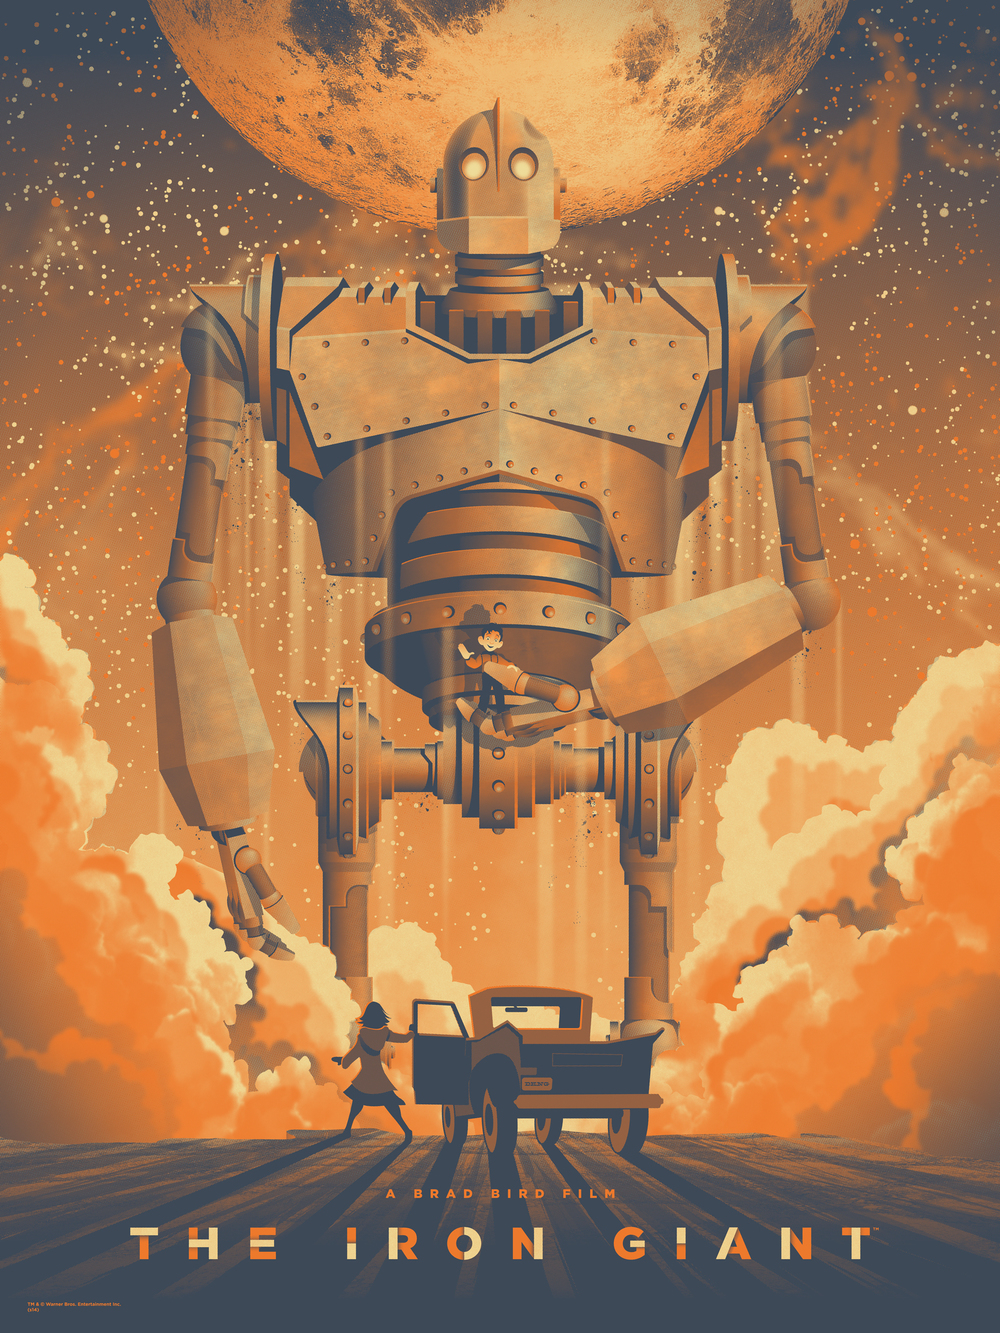 The Iron Giant Poster by DKNG